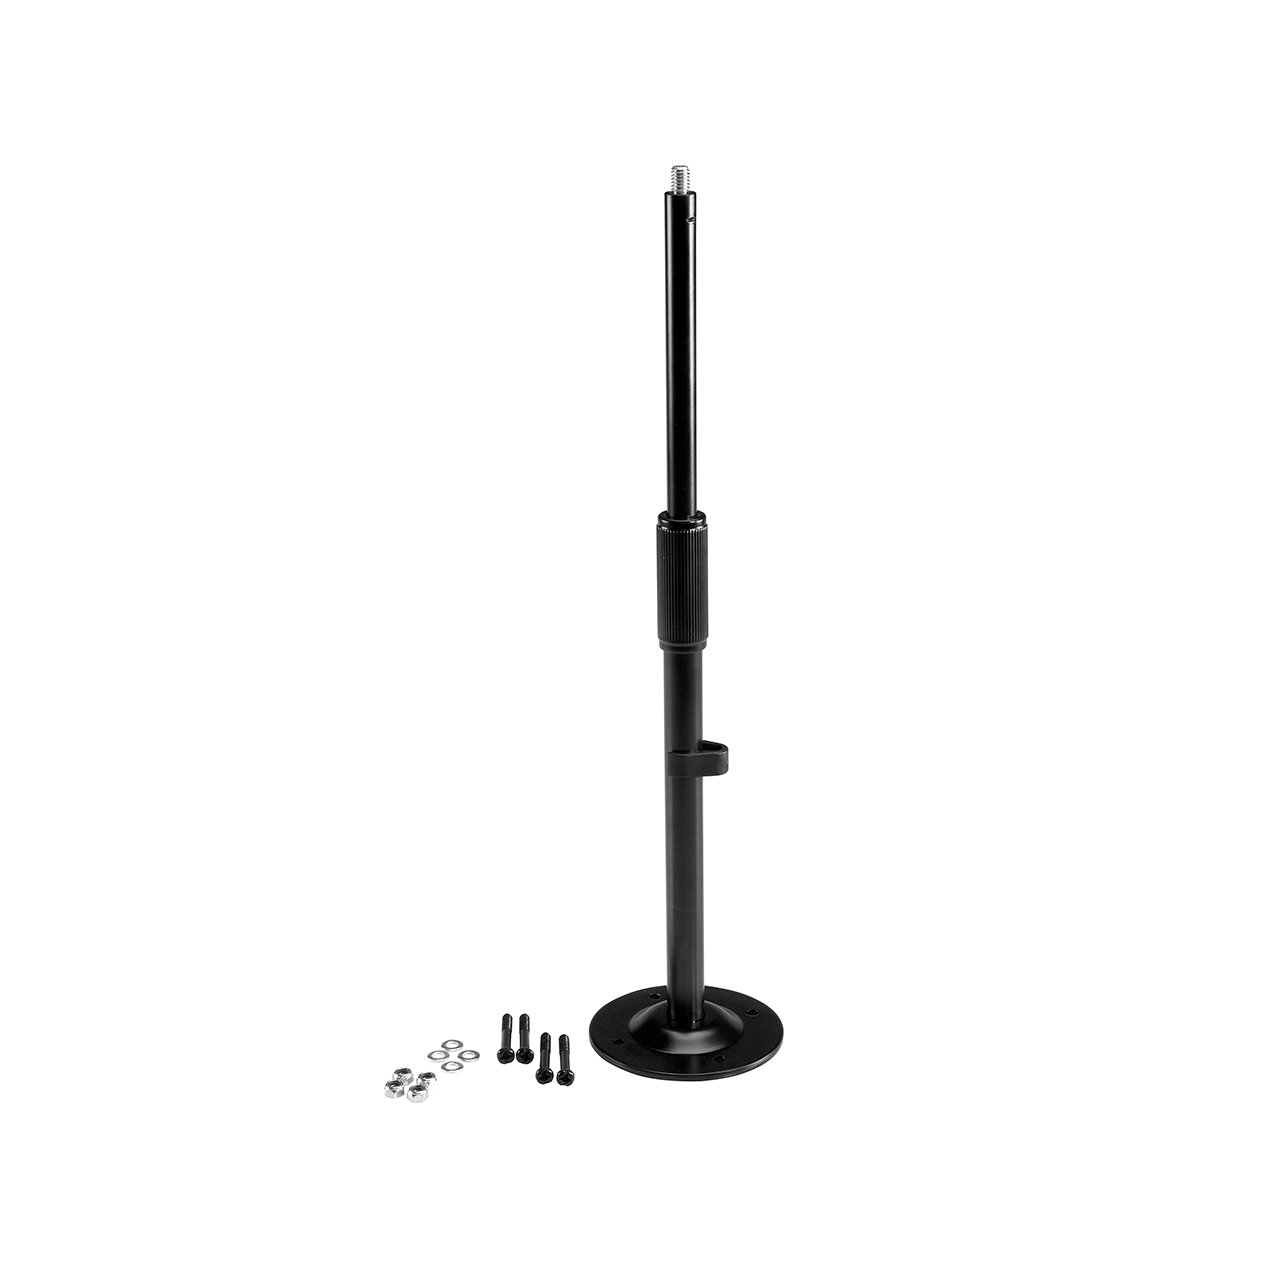 Genelec 8000-425 Adjustable Table Stand for 8010, 8020, 8030 Monitors (SINGLE)